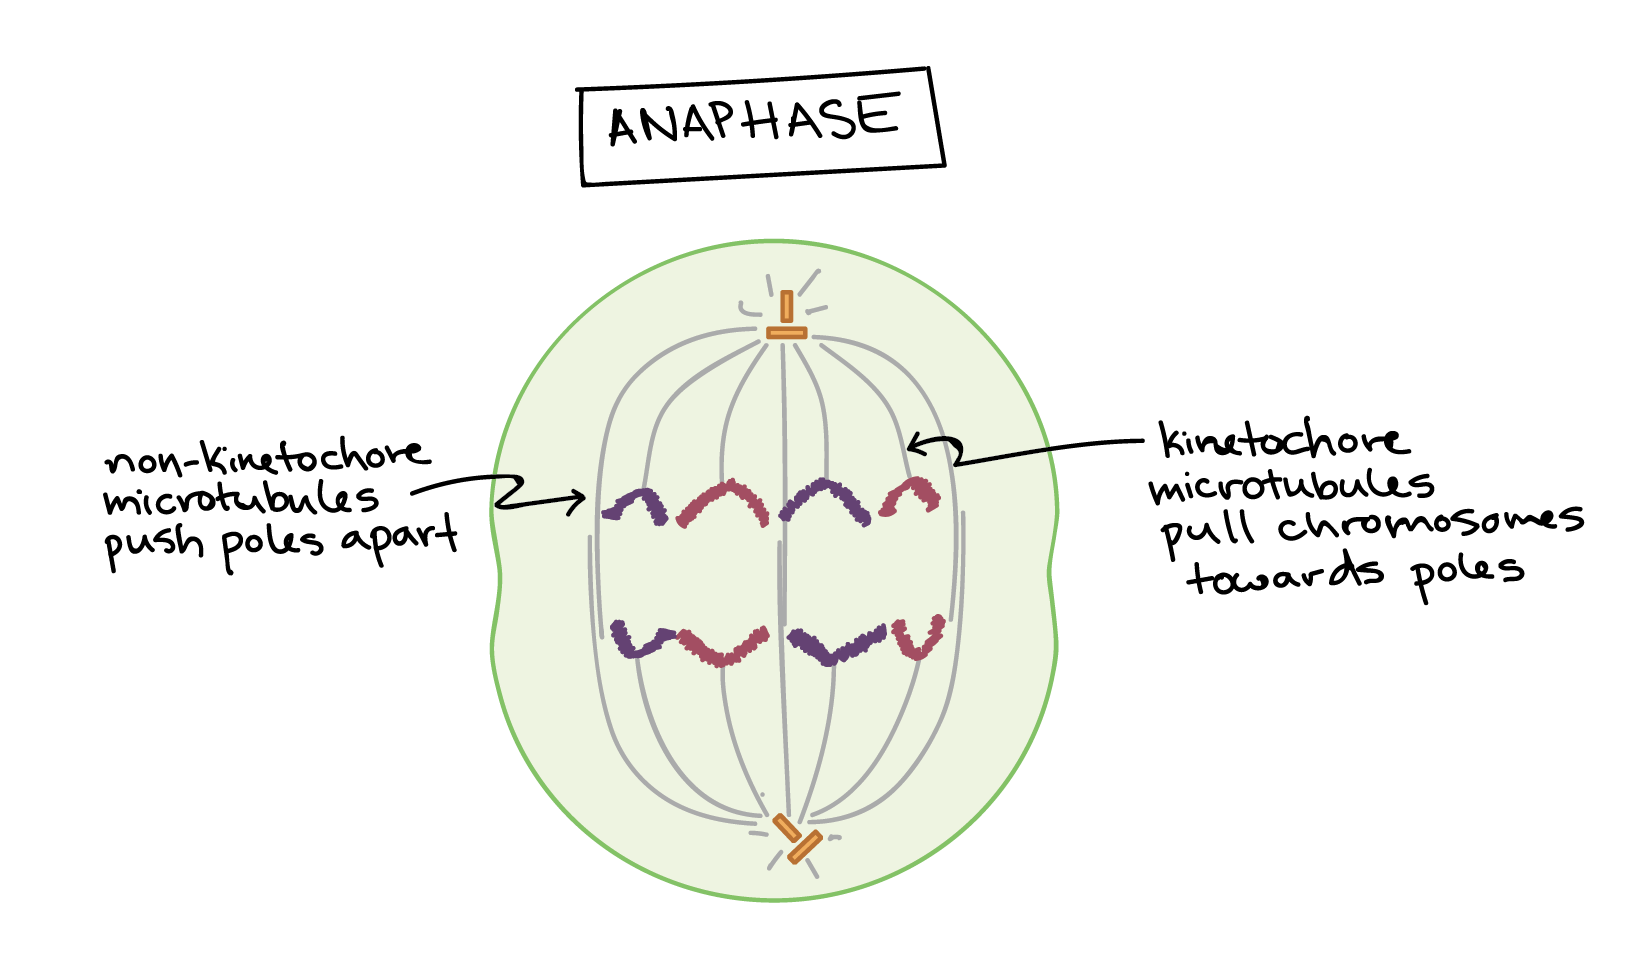 Bacterial Binary Fission The Cell Cycle And Mitosis Article Plant Animal Cells Diagram Medical Khan Academy